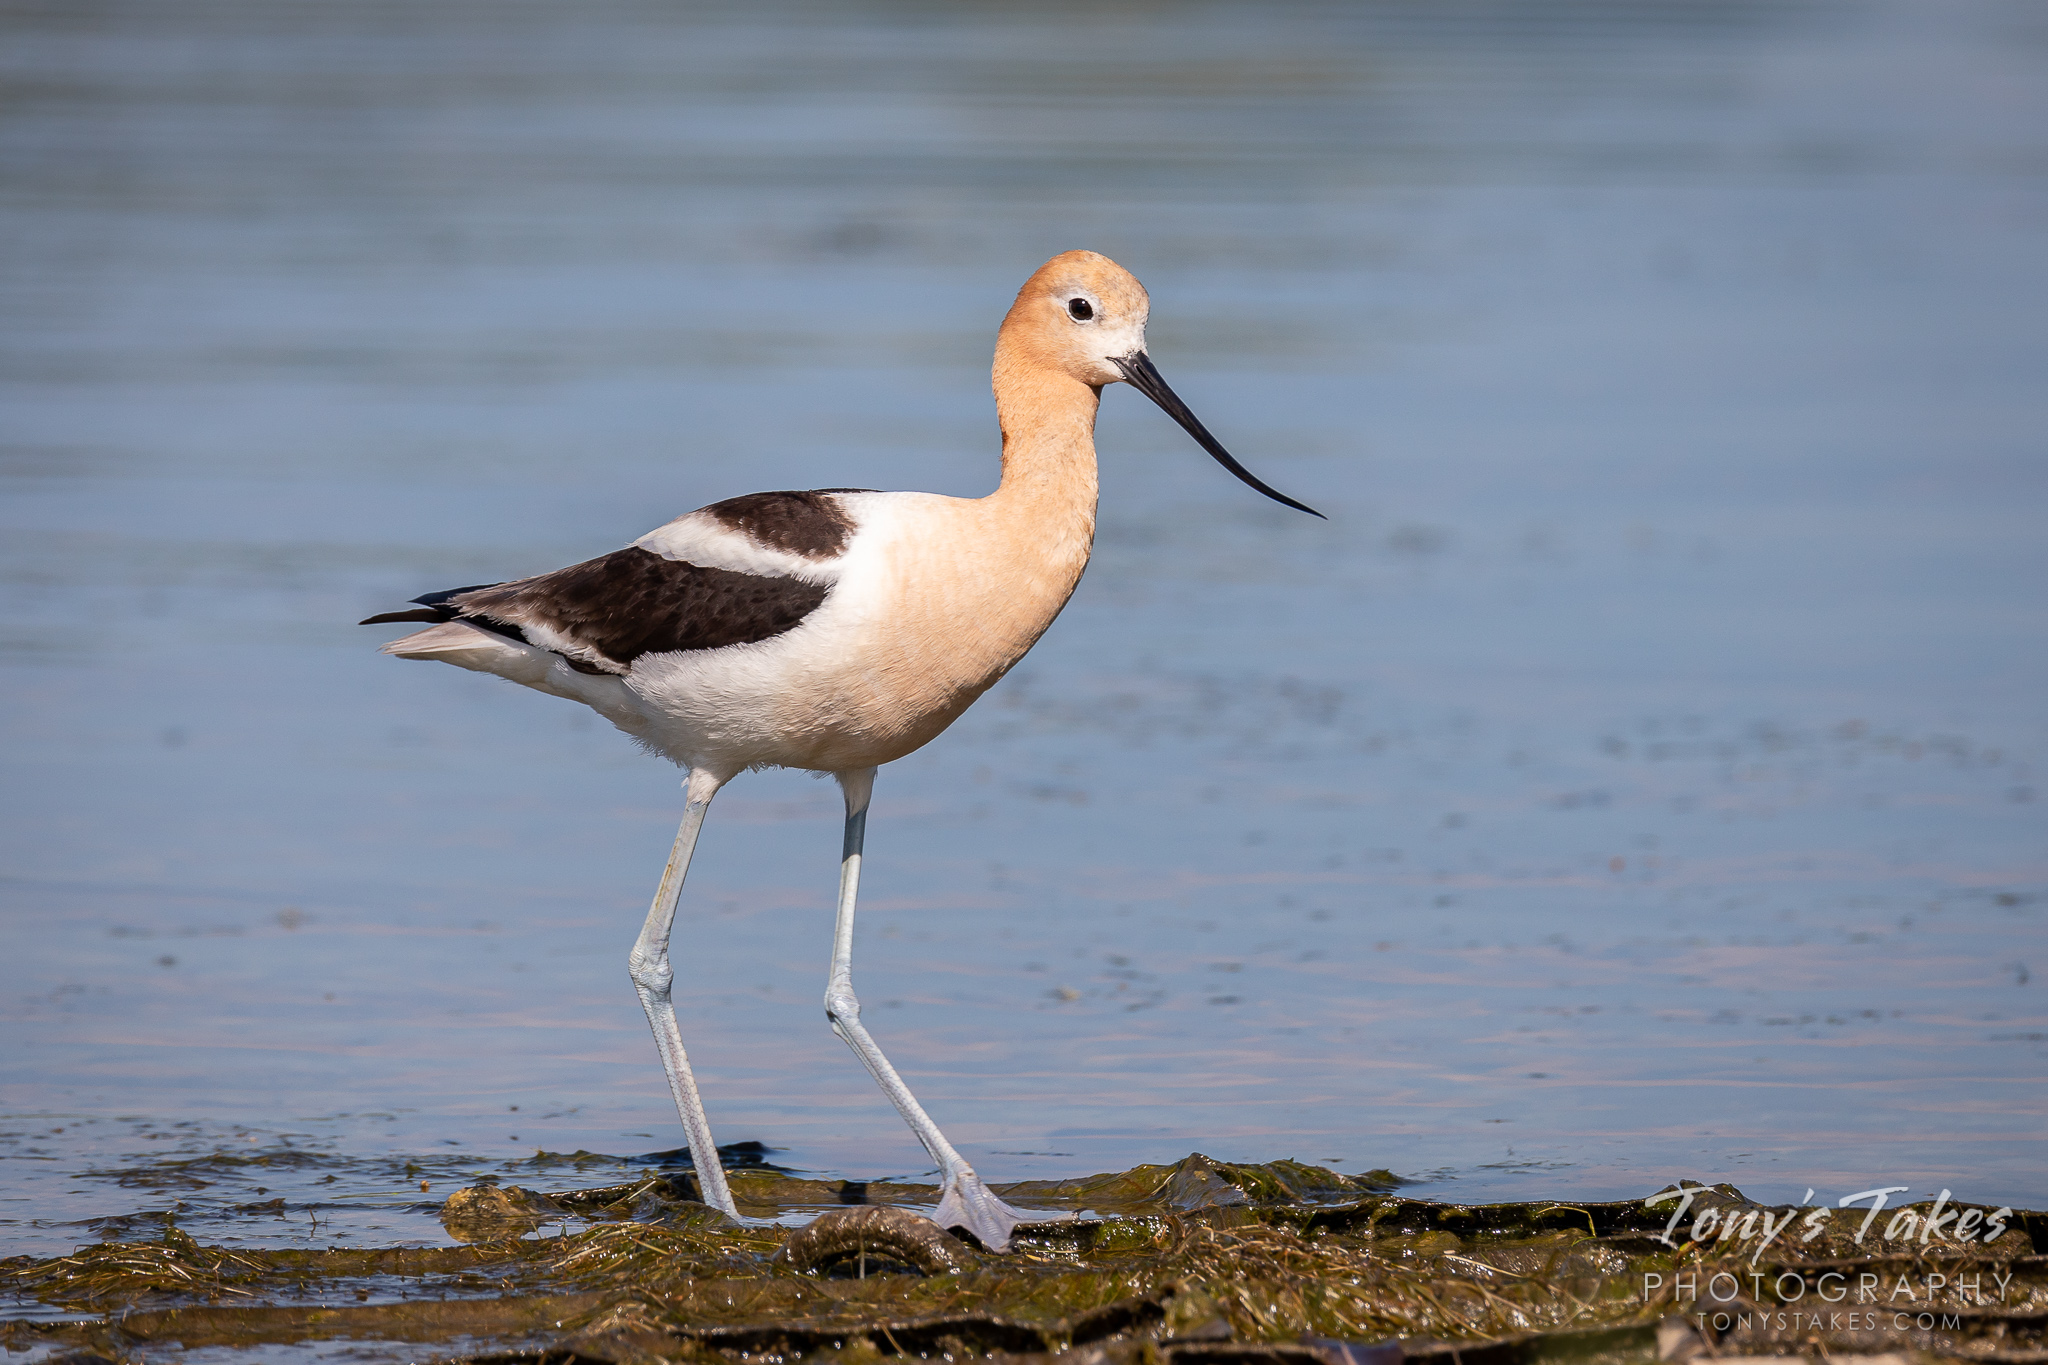 An American avocet wades in the waters in the Eastlake area of Thornton, Colorado. (© Tony's Takes)